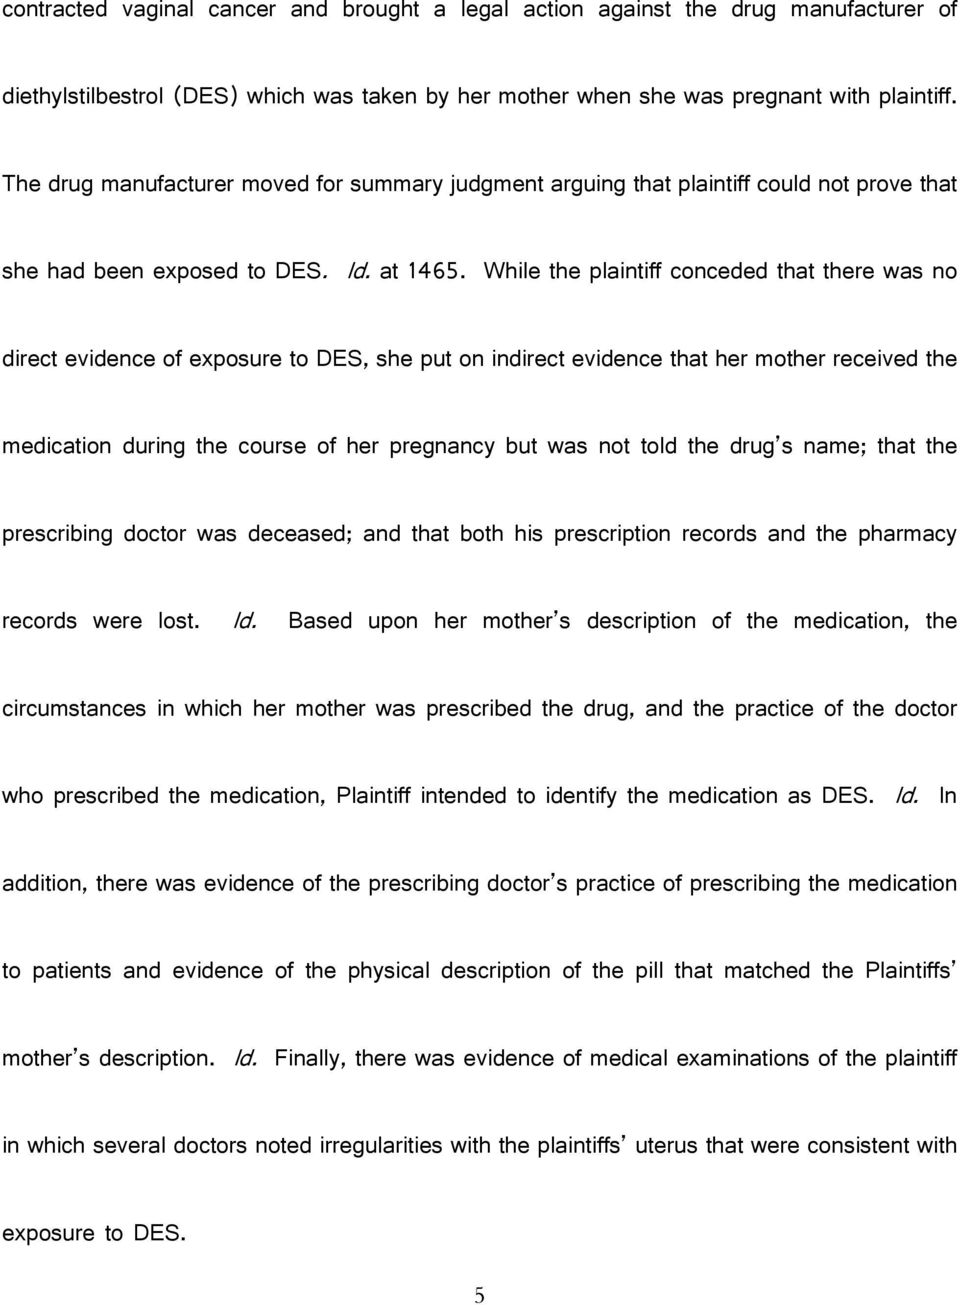 While the plaintiff conceded that there was no direct evidence of exposure to DES, she put on indirect evidence that her mother received the medication during the course of her pregnancy but was not